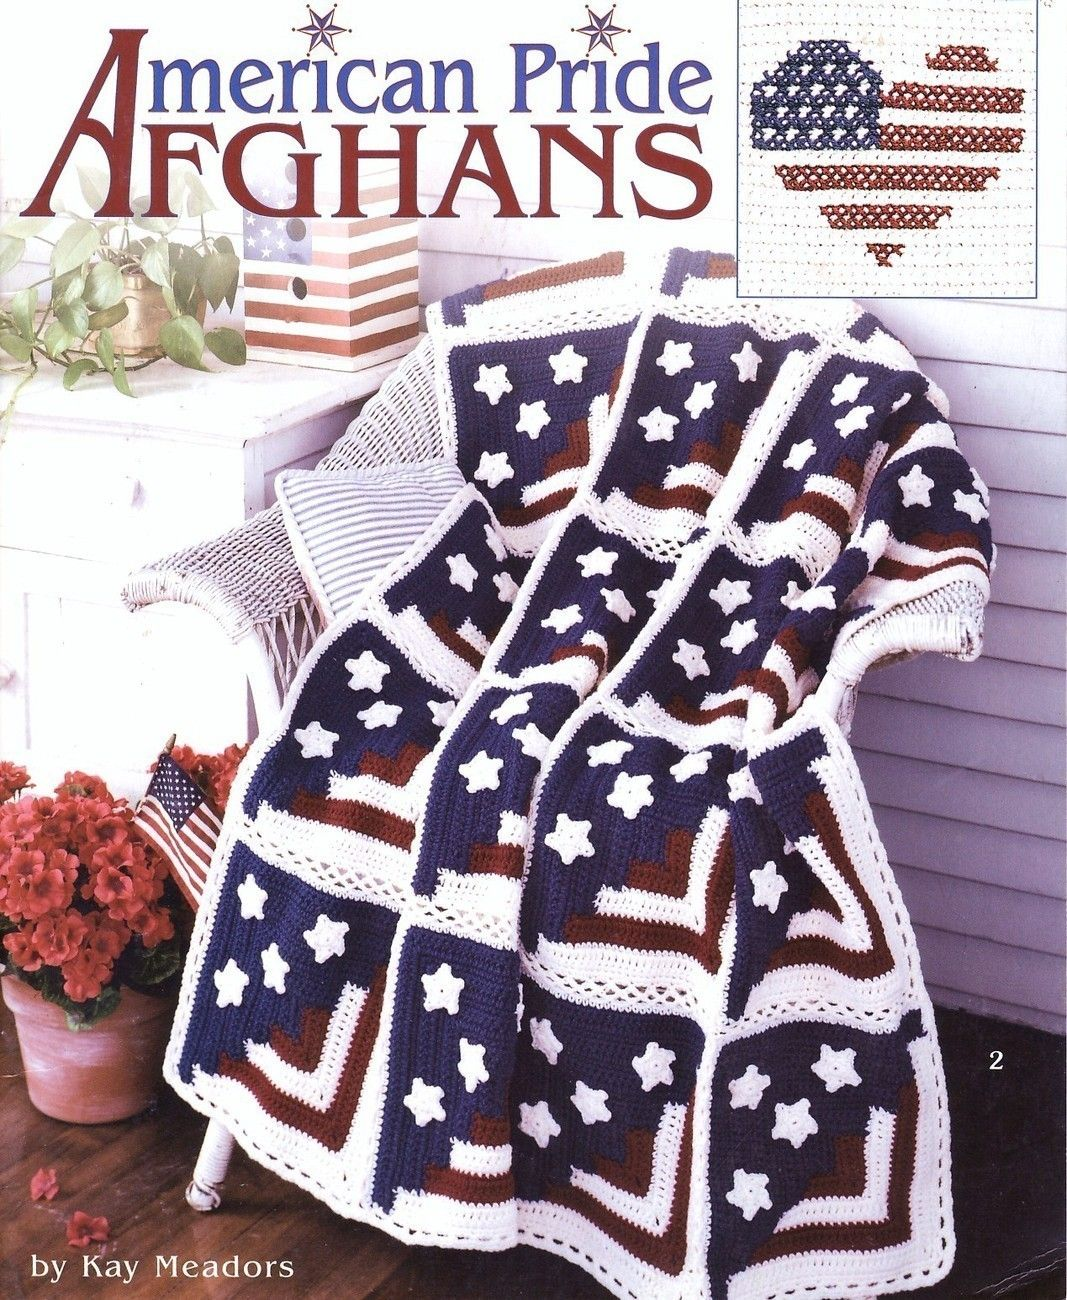 American Pride Afghans Crochet Patterns Book Blankets Throw ...